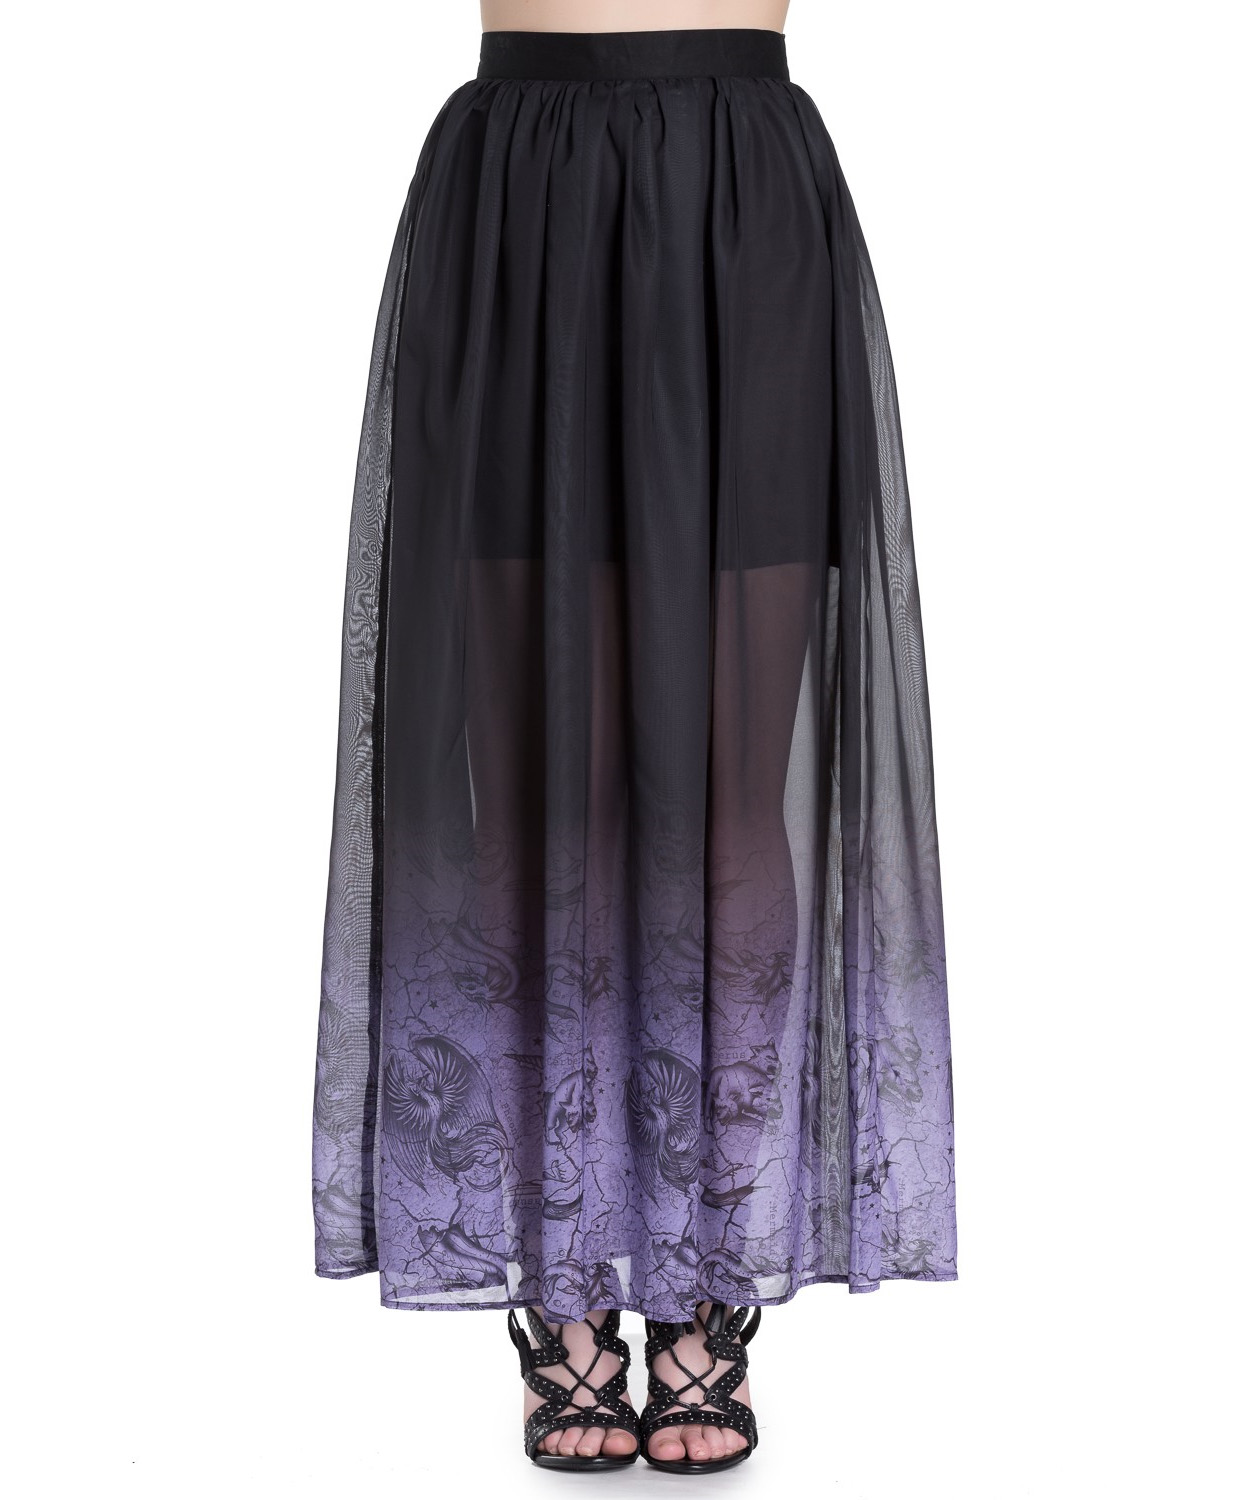 Hell-Bunny-Spin-Doctor-Goth-Purple-Mystical-EVADINE-Maxi-Skirt-All-Sizes thumbnail 3